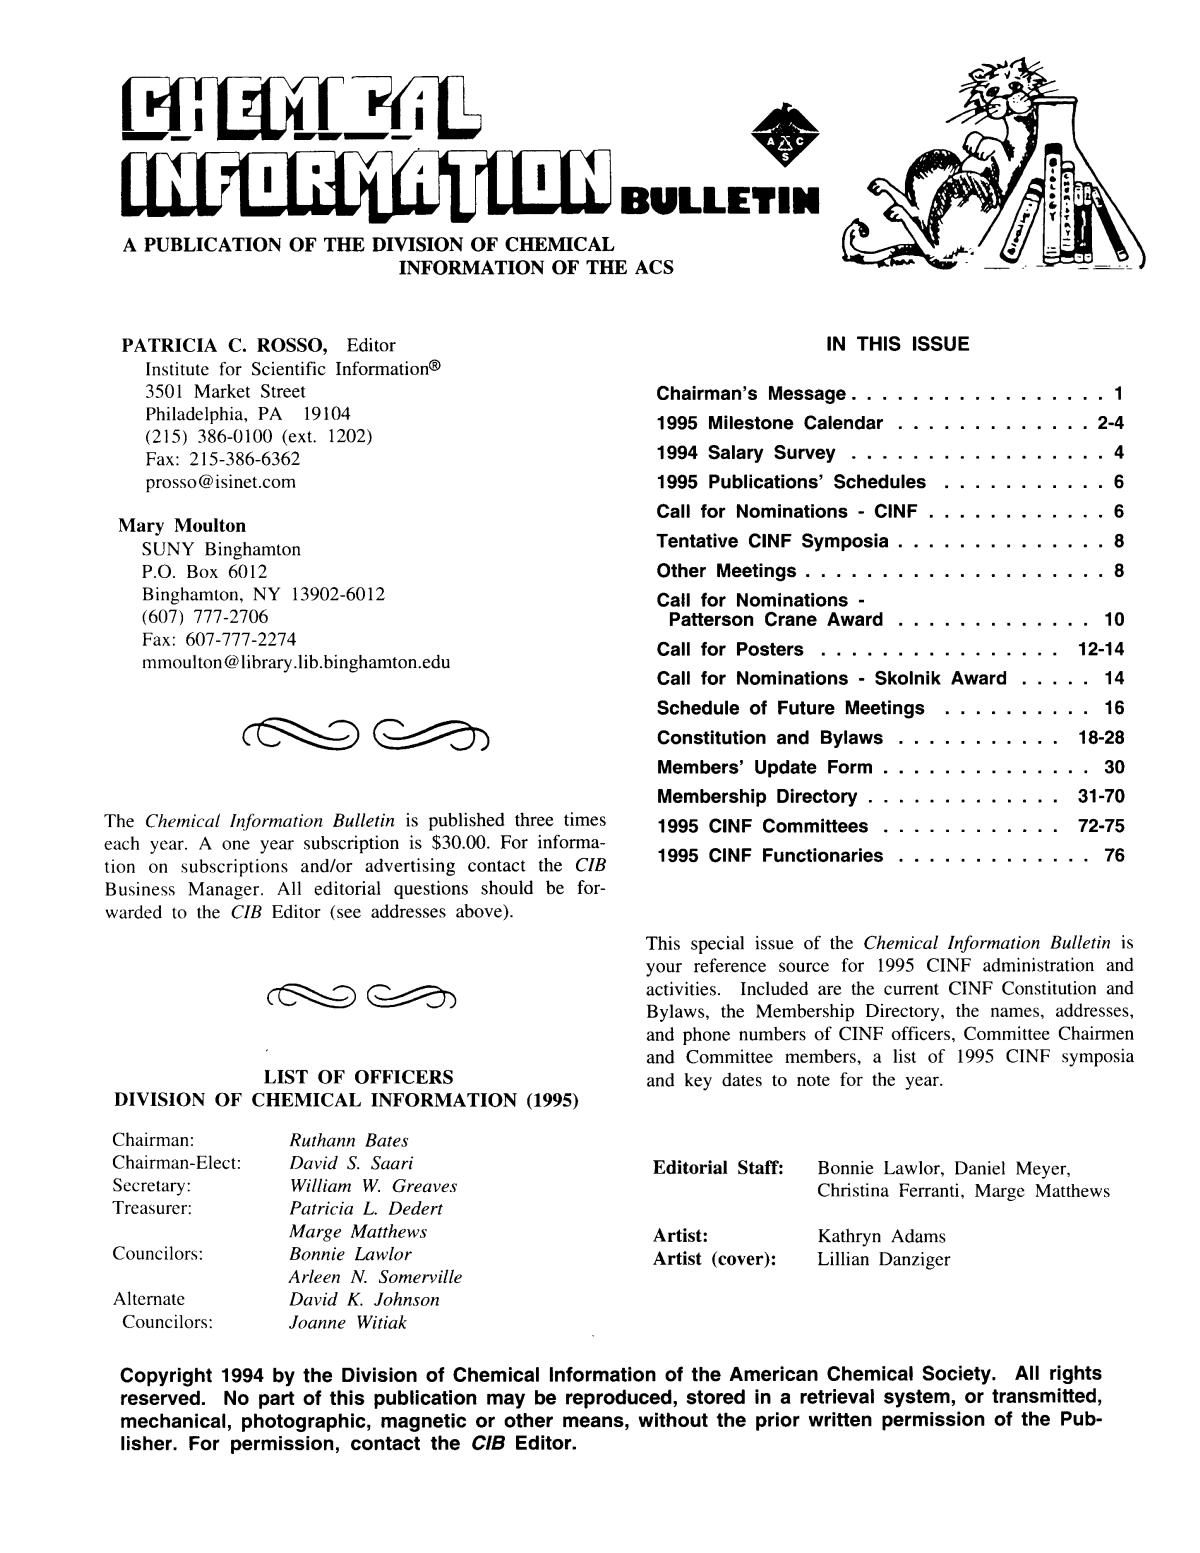 Chemical Information Bulletin, Volume 47, Number 1, January 1995                                                                                                      Front Inside